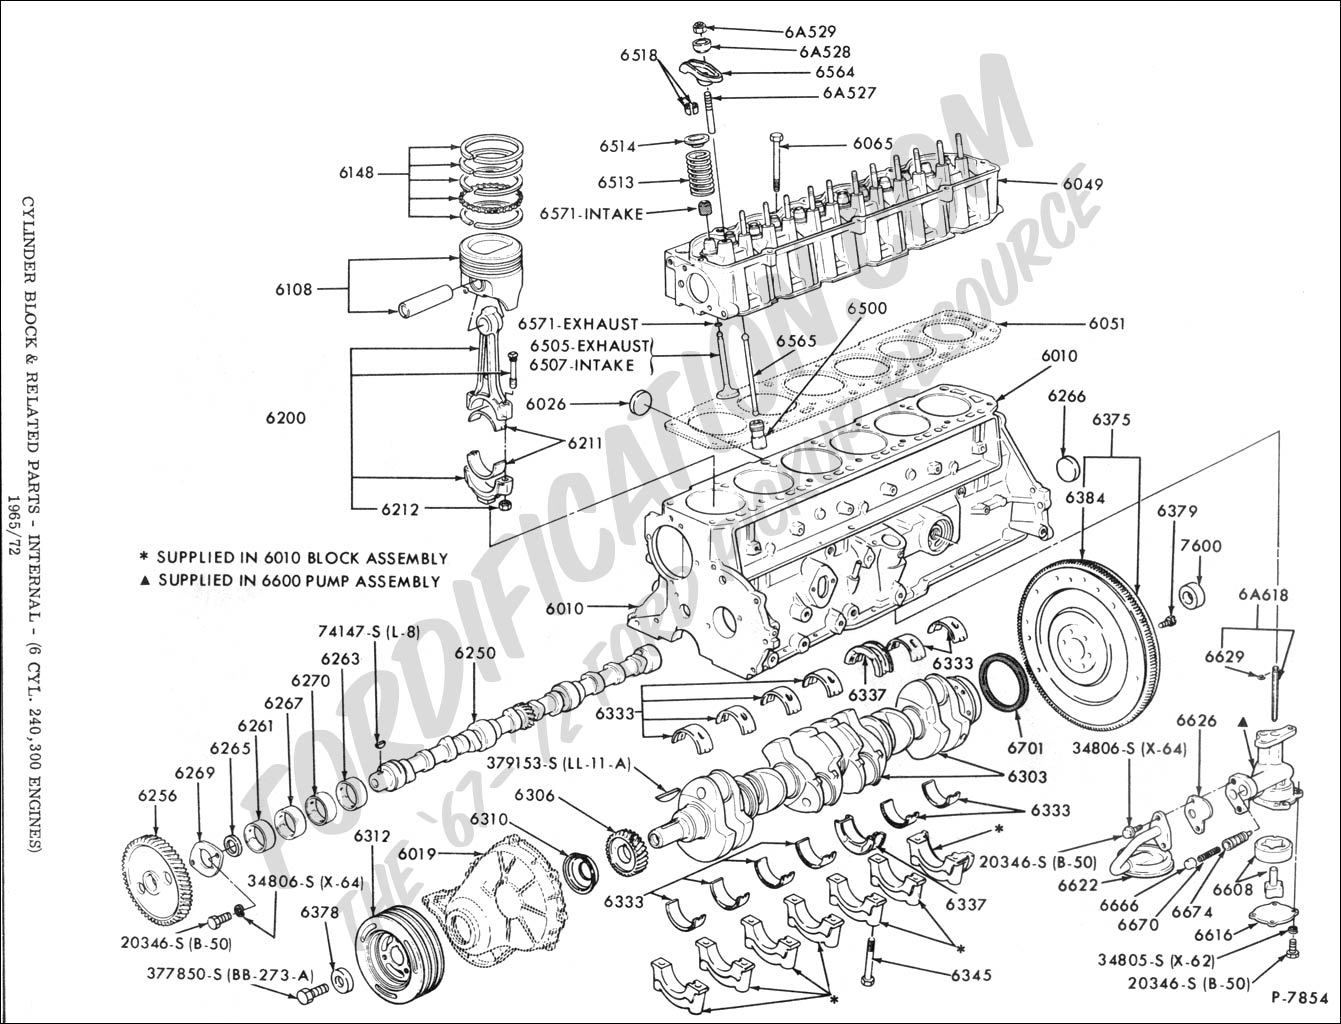 Boost Bypass F150 Lightning Harley Davidson moreover Sr4 Transmission also Discussion T1731 ds539371 likewise Ford Front Ke Caliper Diagram also Volkswagen Rabbit 1 6 1992 Specs And Images. on ford 5 4 exploded view of engine